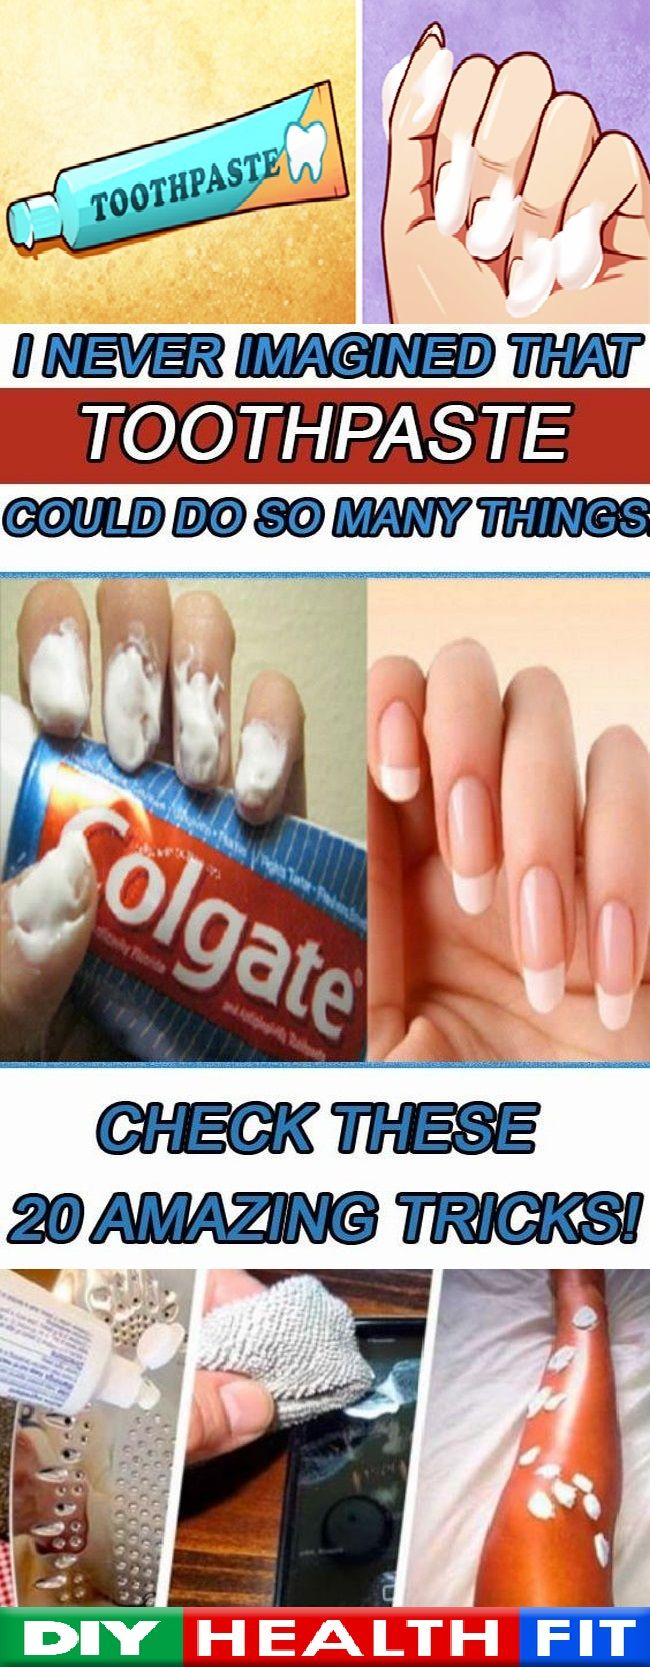 Did you know that toothpaste can help you do so much more than just cleaning your teeth? Continue reading the article below to learn 20 amazing toothpaste tricks! Silver polish Silver cleaning costs a lot, but you should know that you can clean your tarnished silver items safely with toothpaste. Just rub some […]